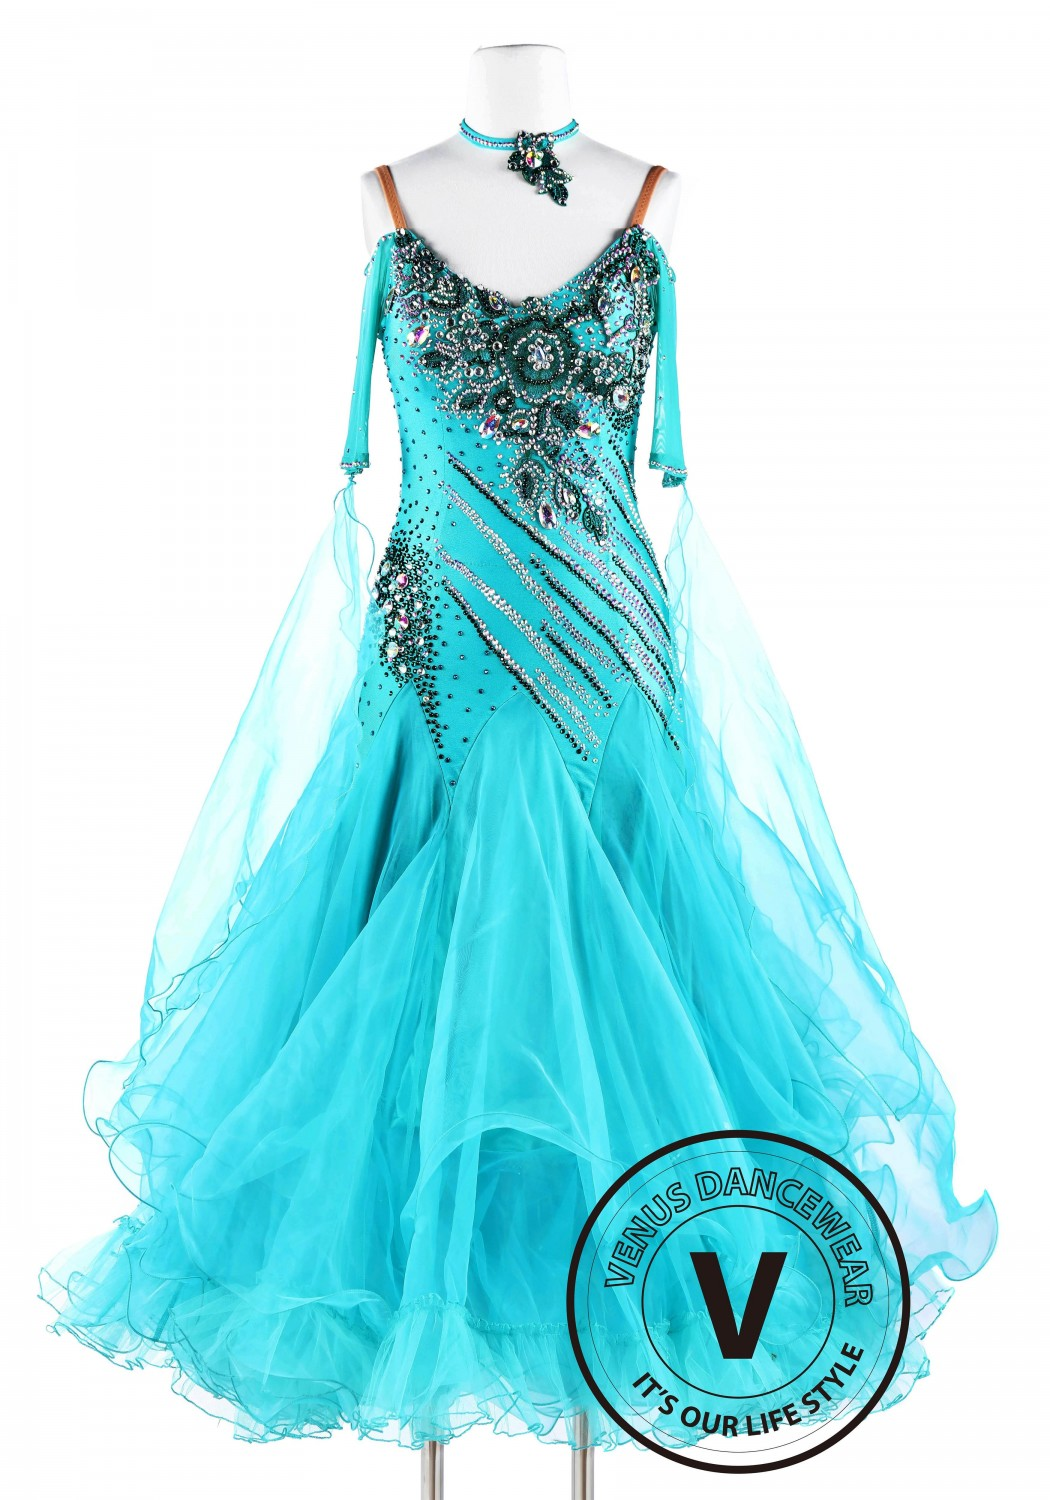 Water Elemental Smooth Waltz Tango Quickstep Ballroom Competition Dance Dress